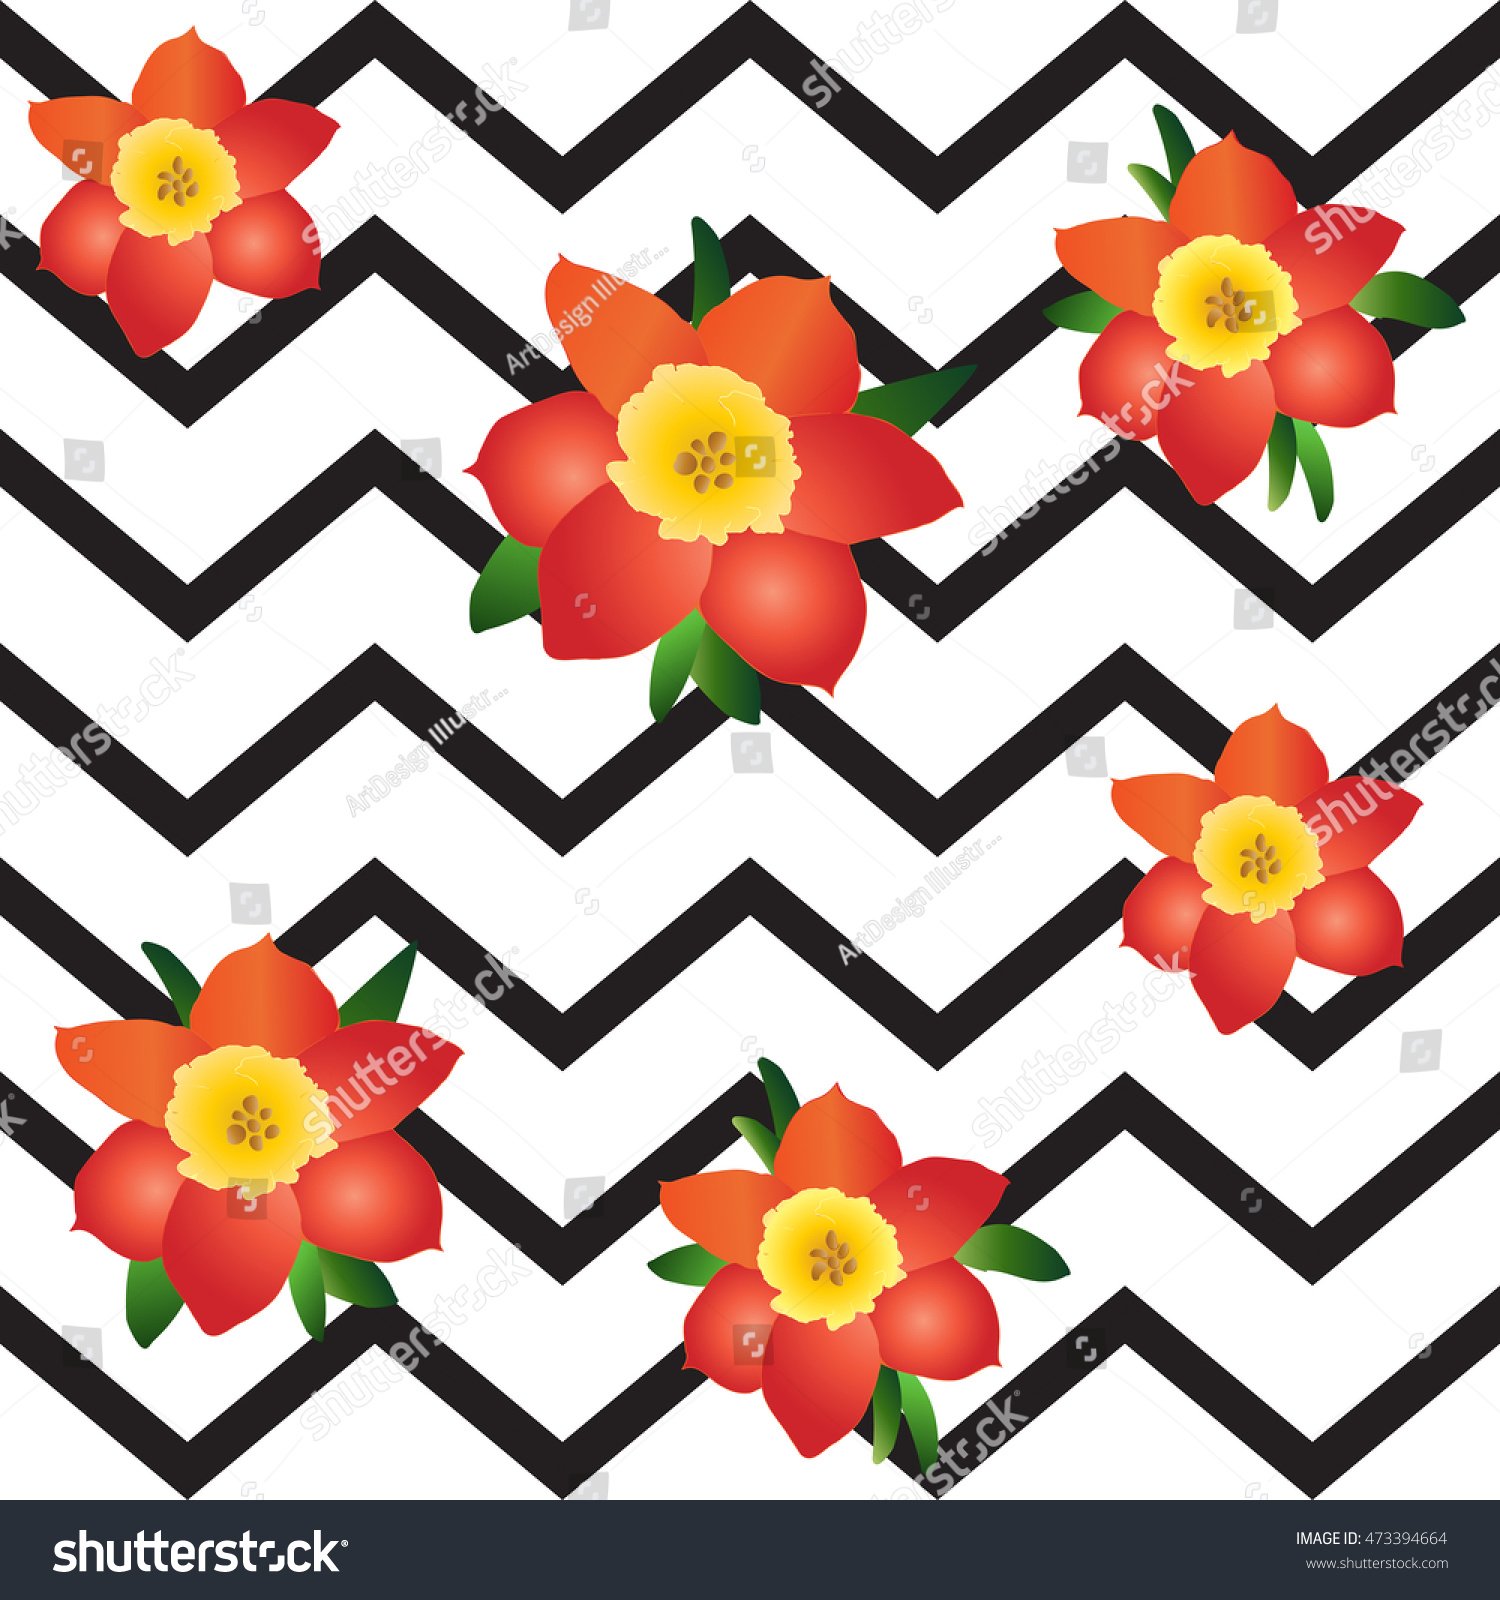 Arte Floral Vetor Floral Abstract Background Vector Illustration Flowers Stock